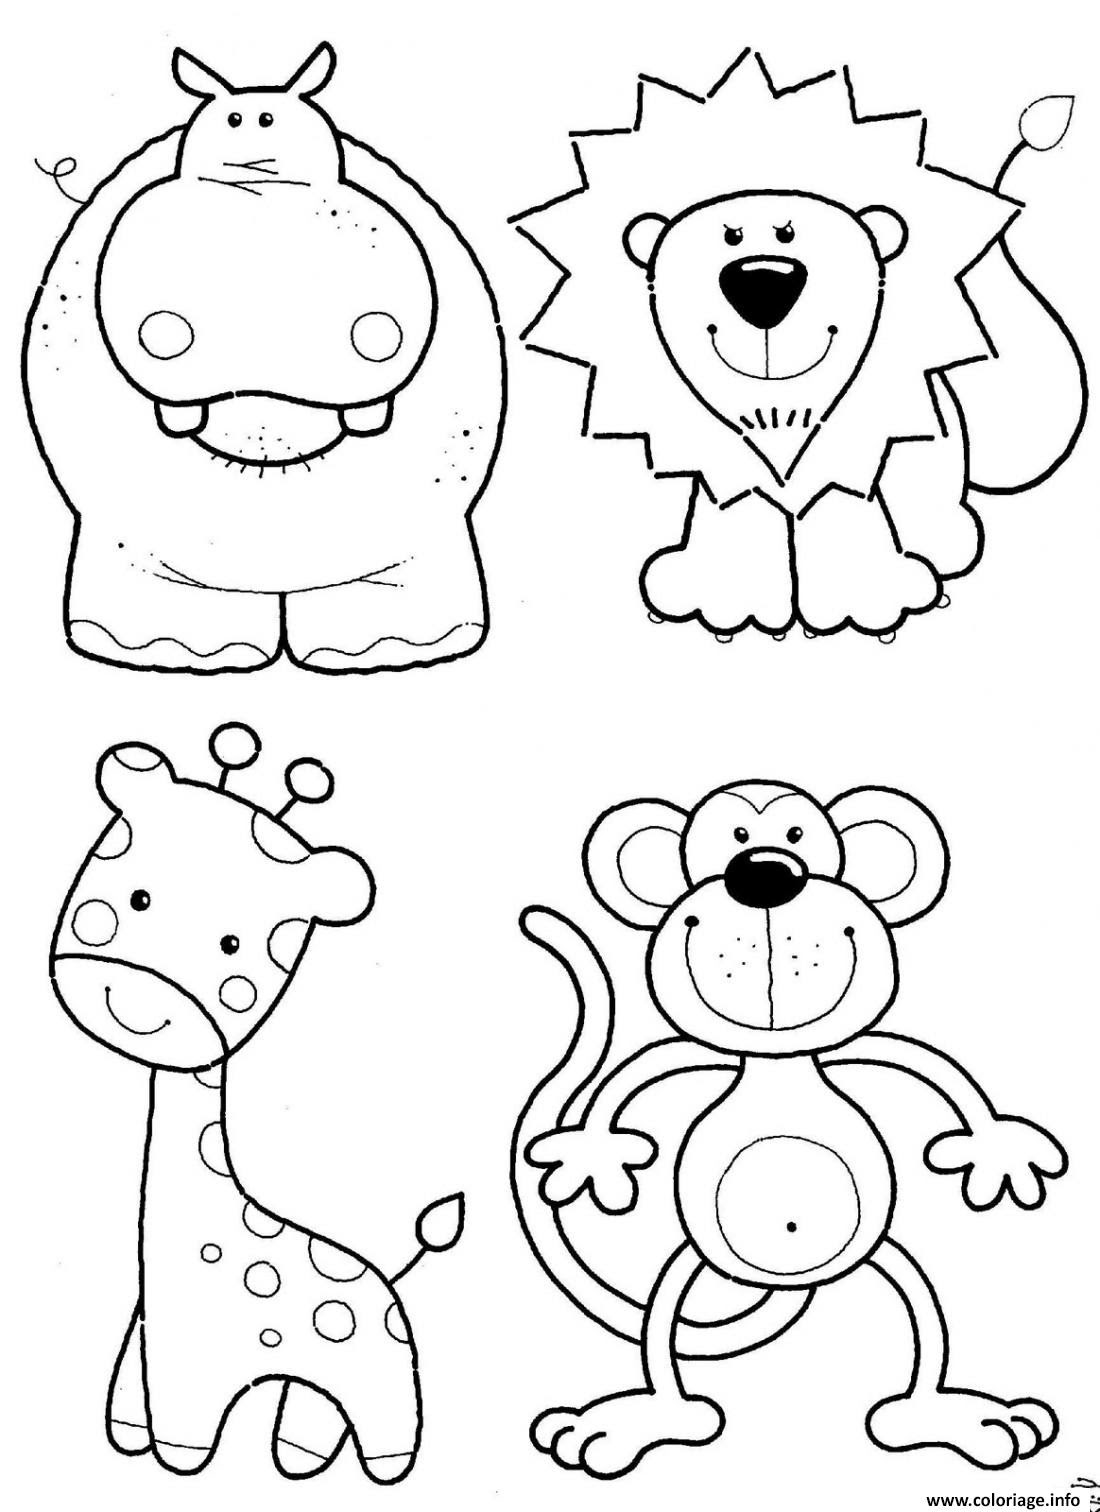 Dessin animals Tsum Tsum facile cute Coloriage Gratuit   Imprimer